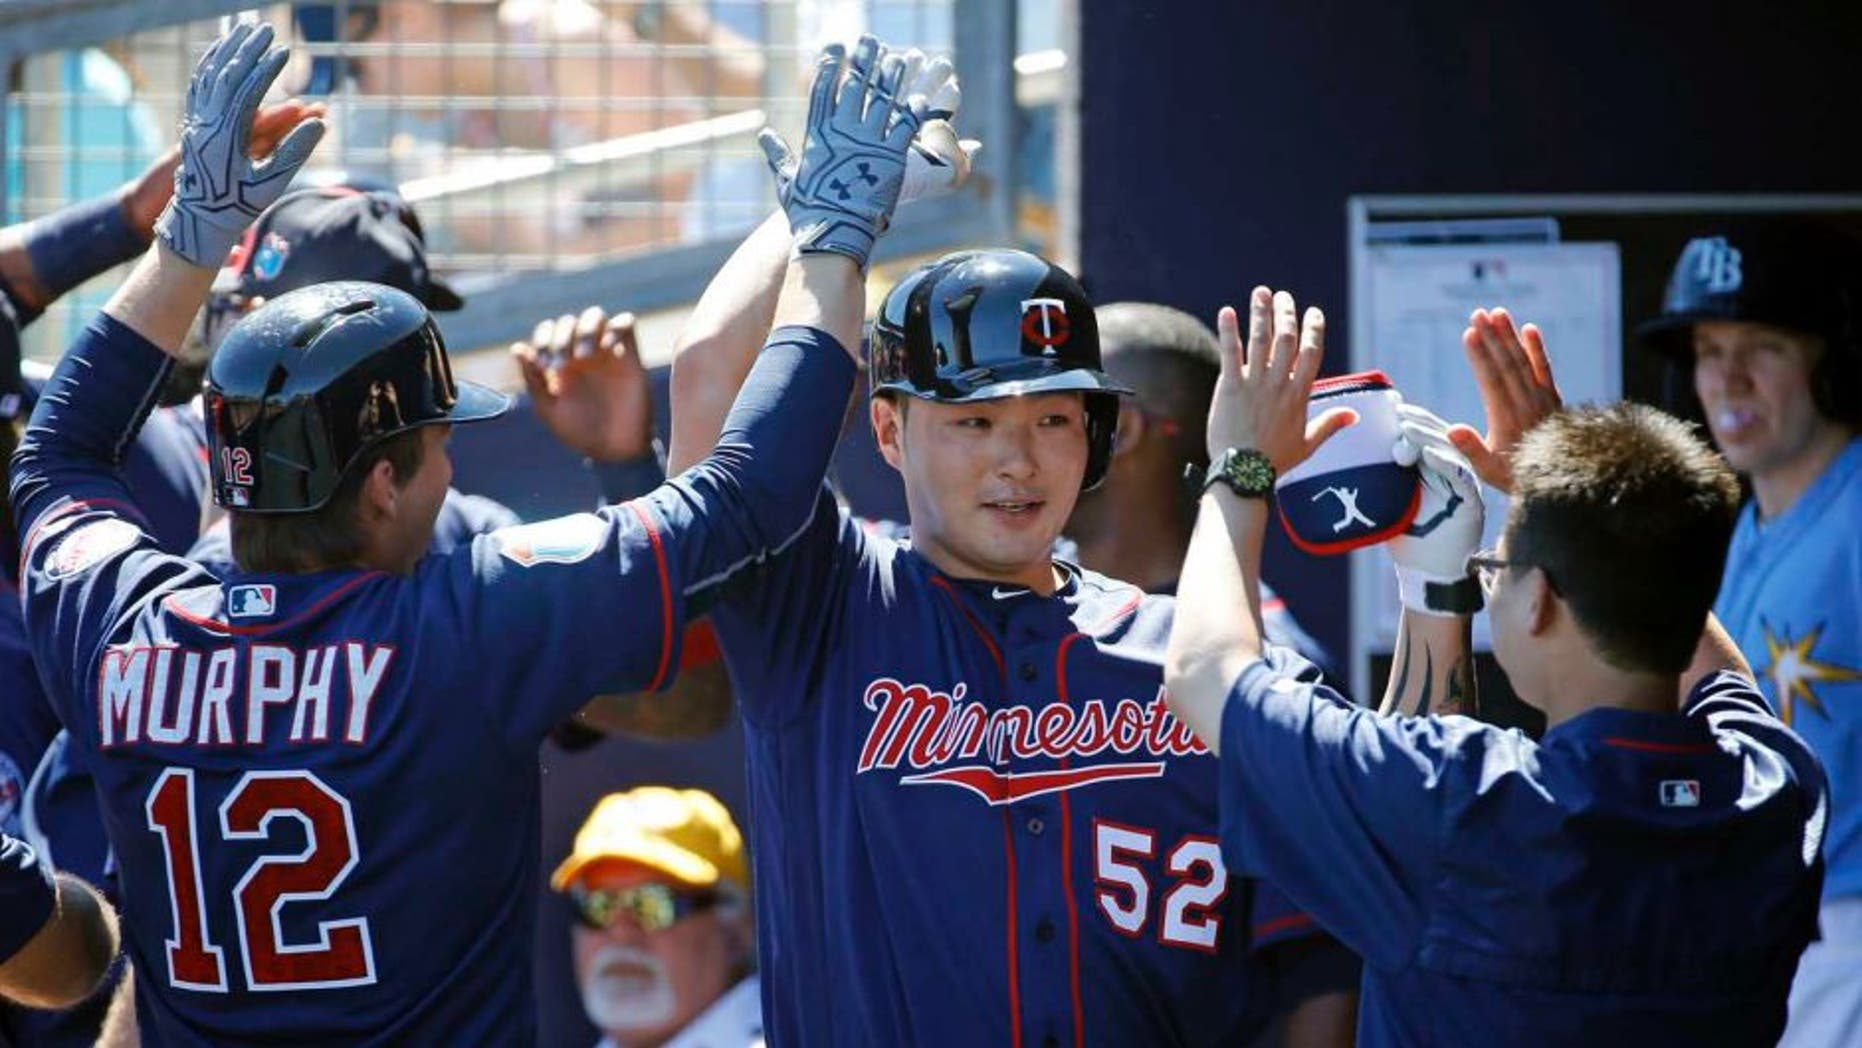 The Minnesota Twins' Byung Ho Park (center) high-fives teammates in the dugout after hitting a grand slam in the first inning of a spring training game against the Tampa Bay Rays in Port Charlotte, Fla., on Sunday, March 6, 2016.